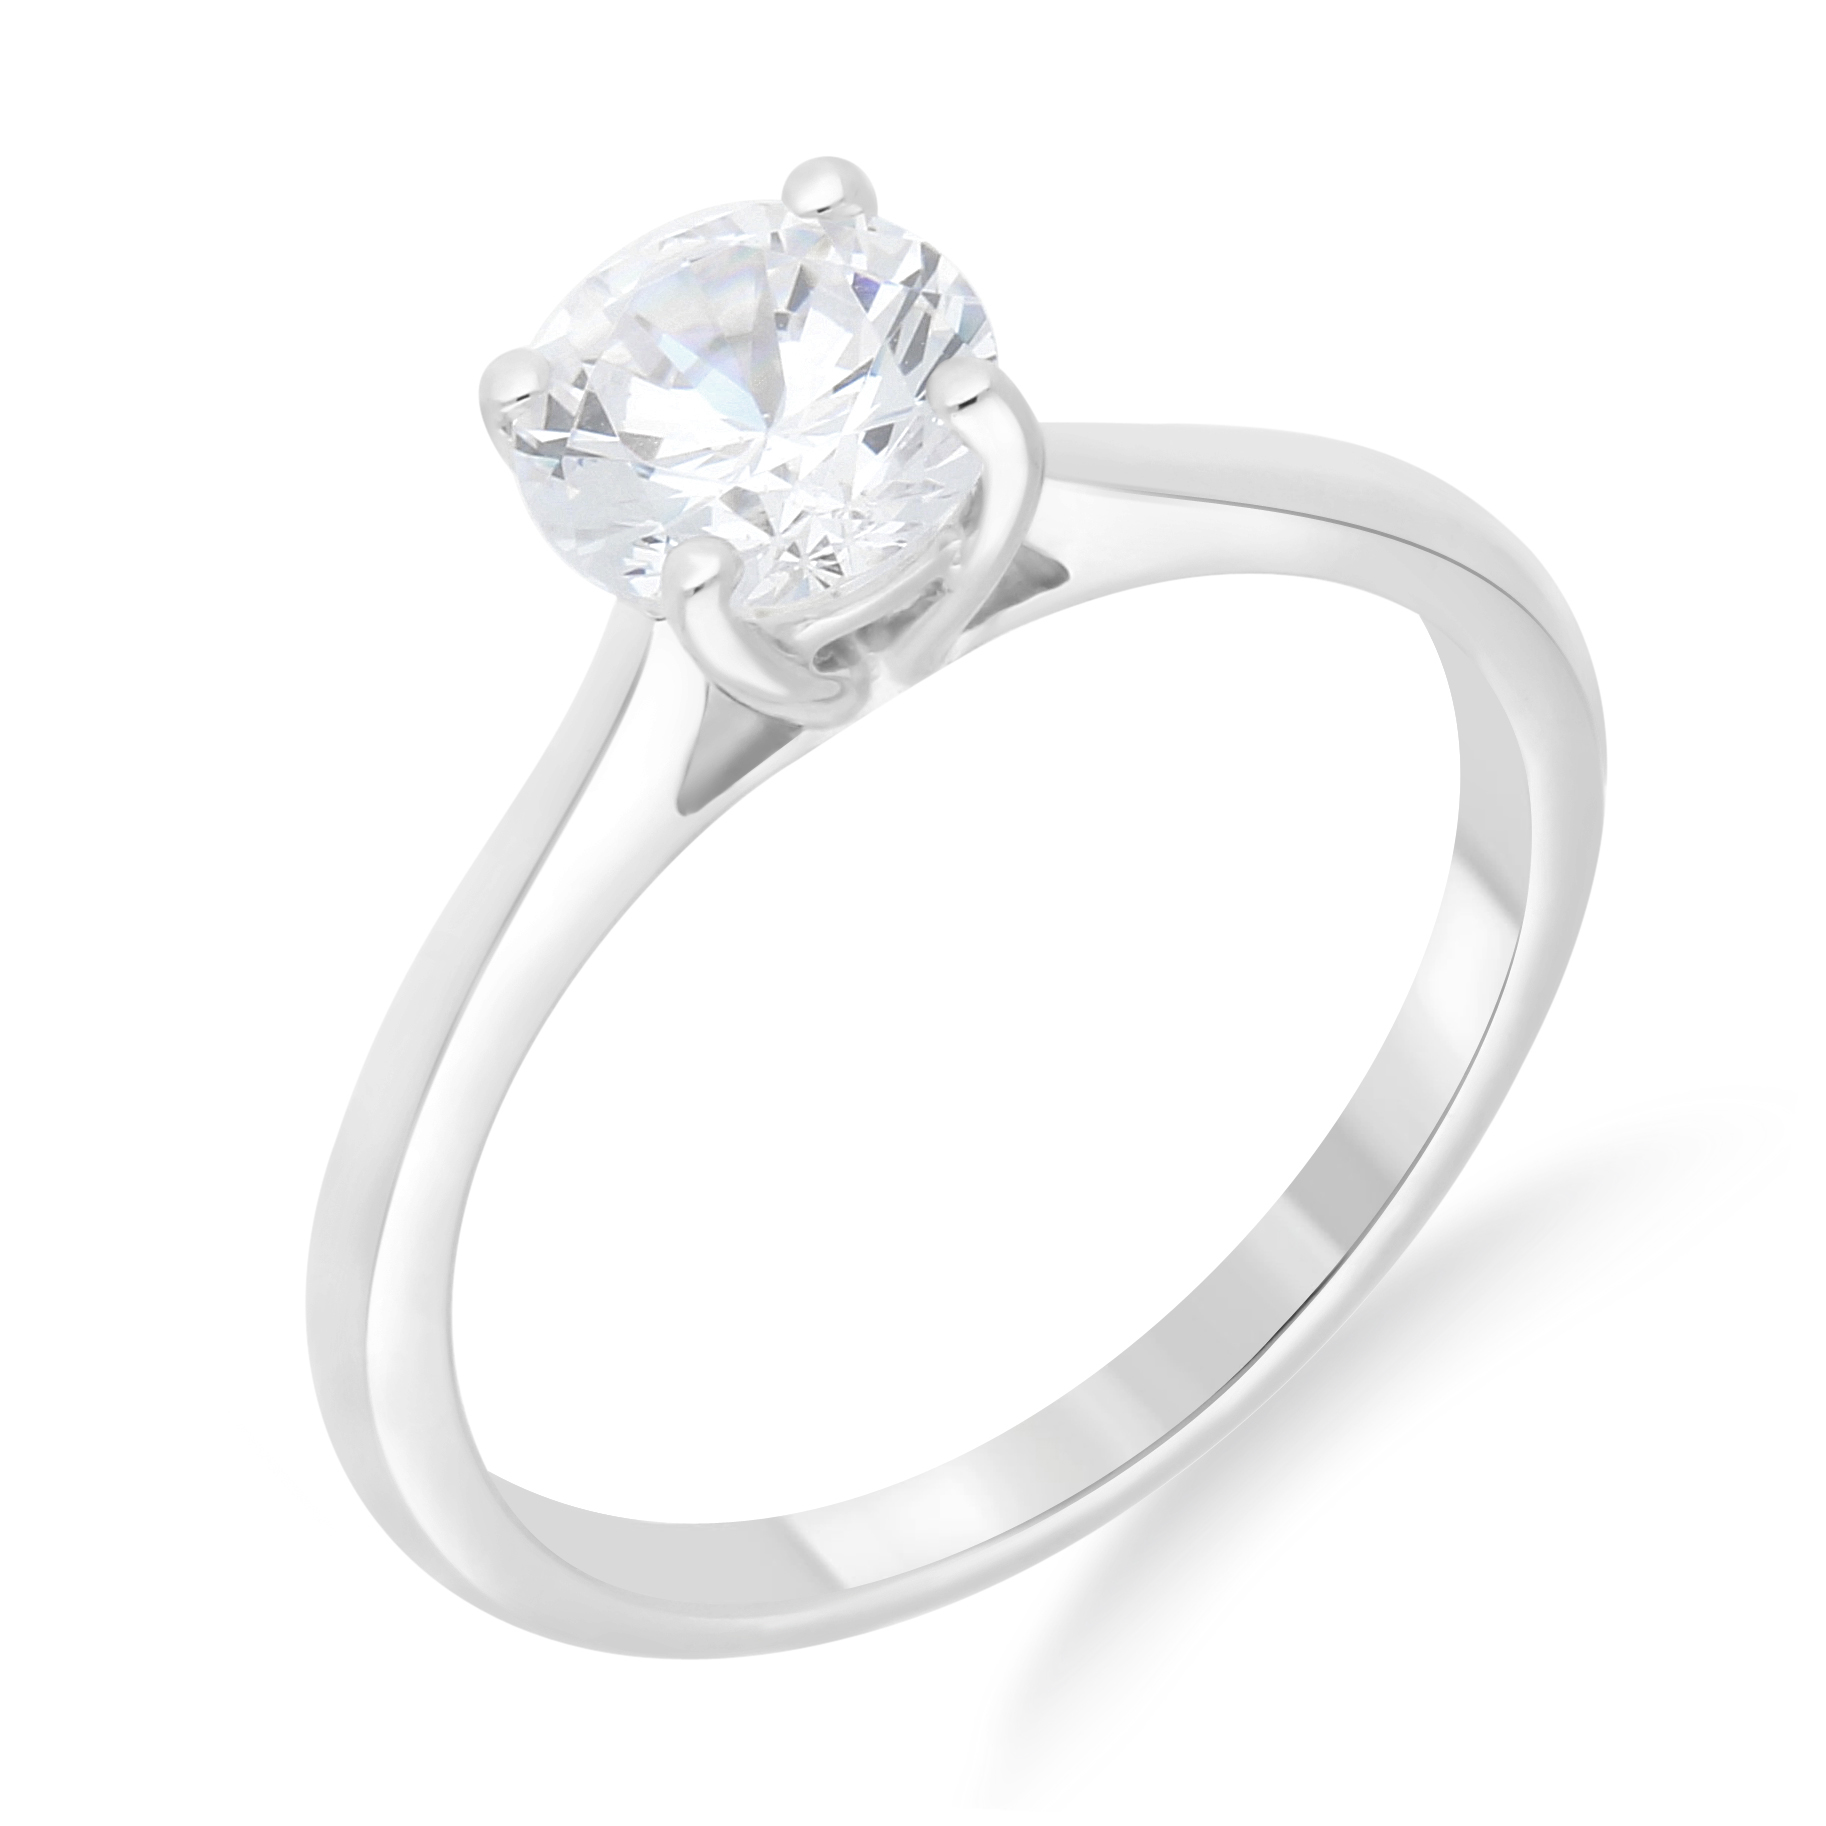 Classis Round Diamond Side Stone Diamond Engagement Ring with Pave Setting